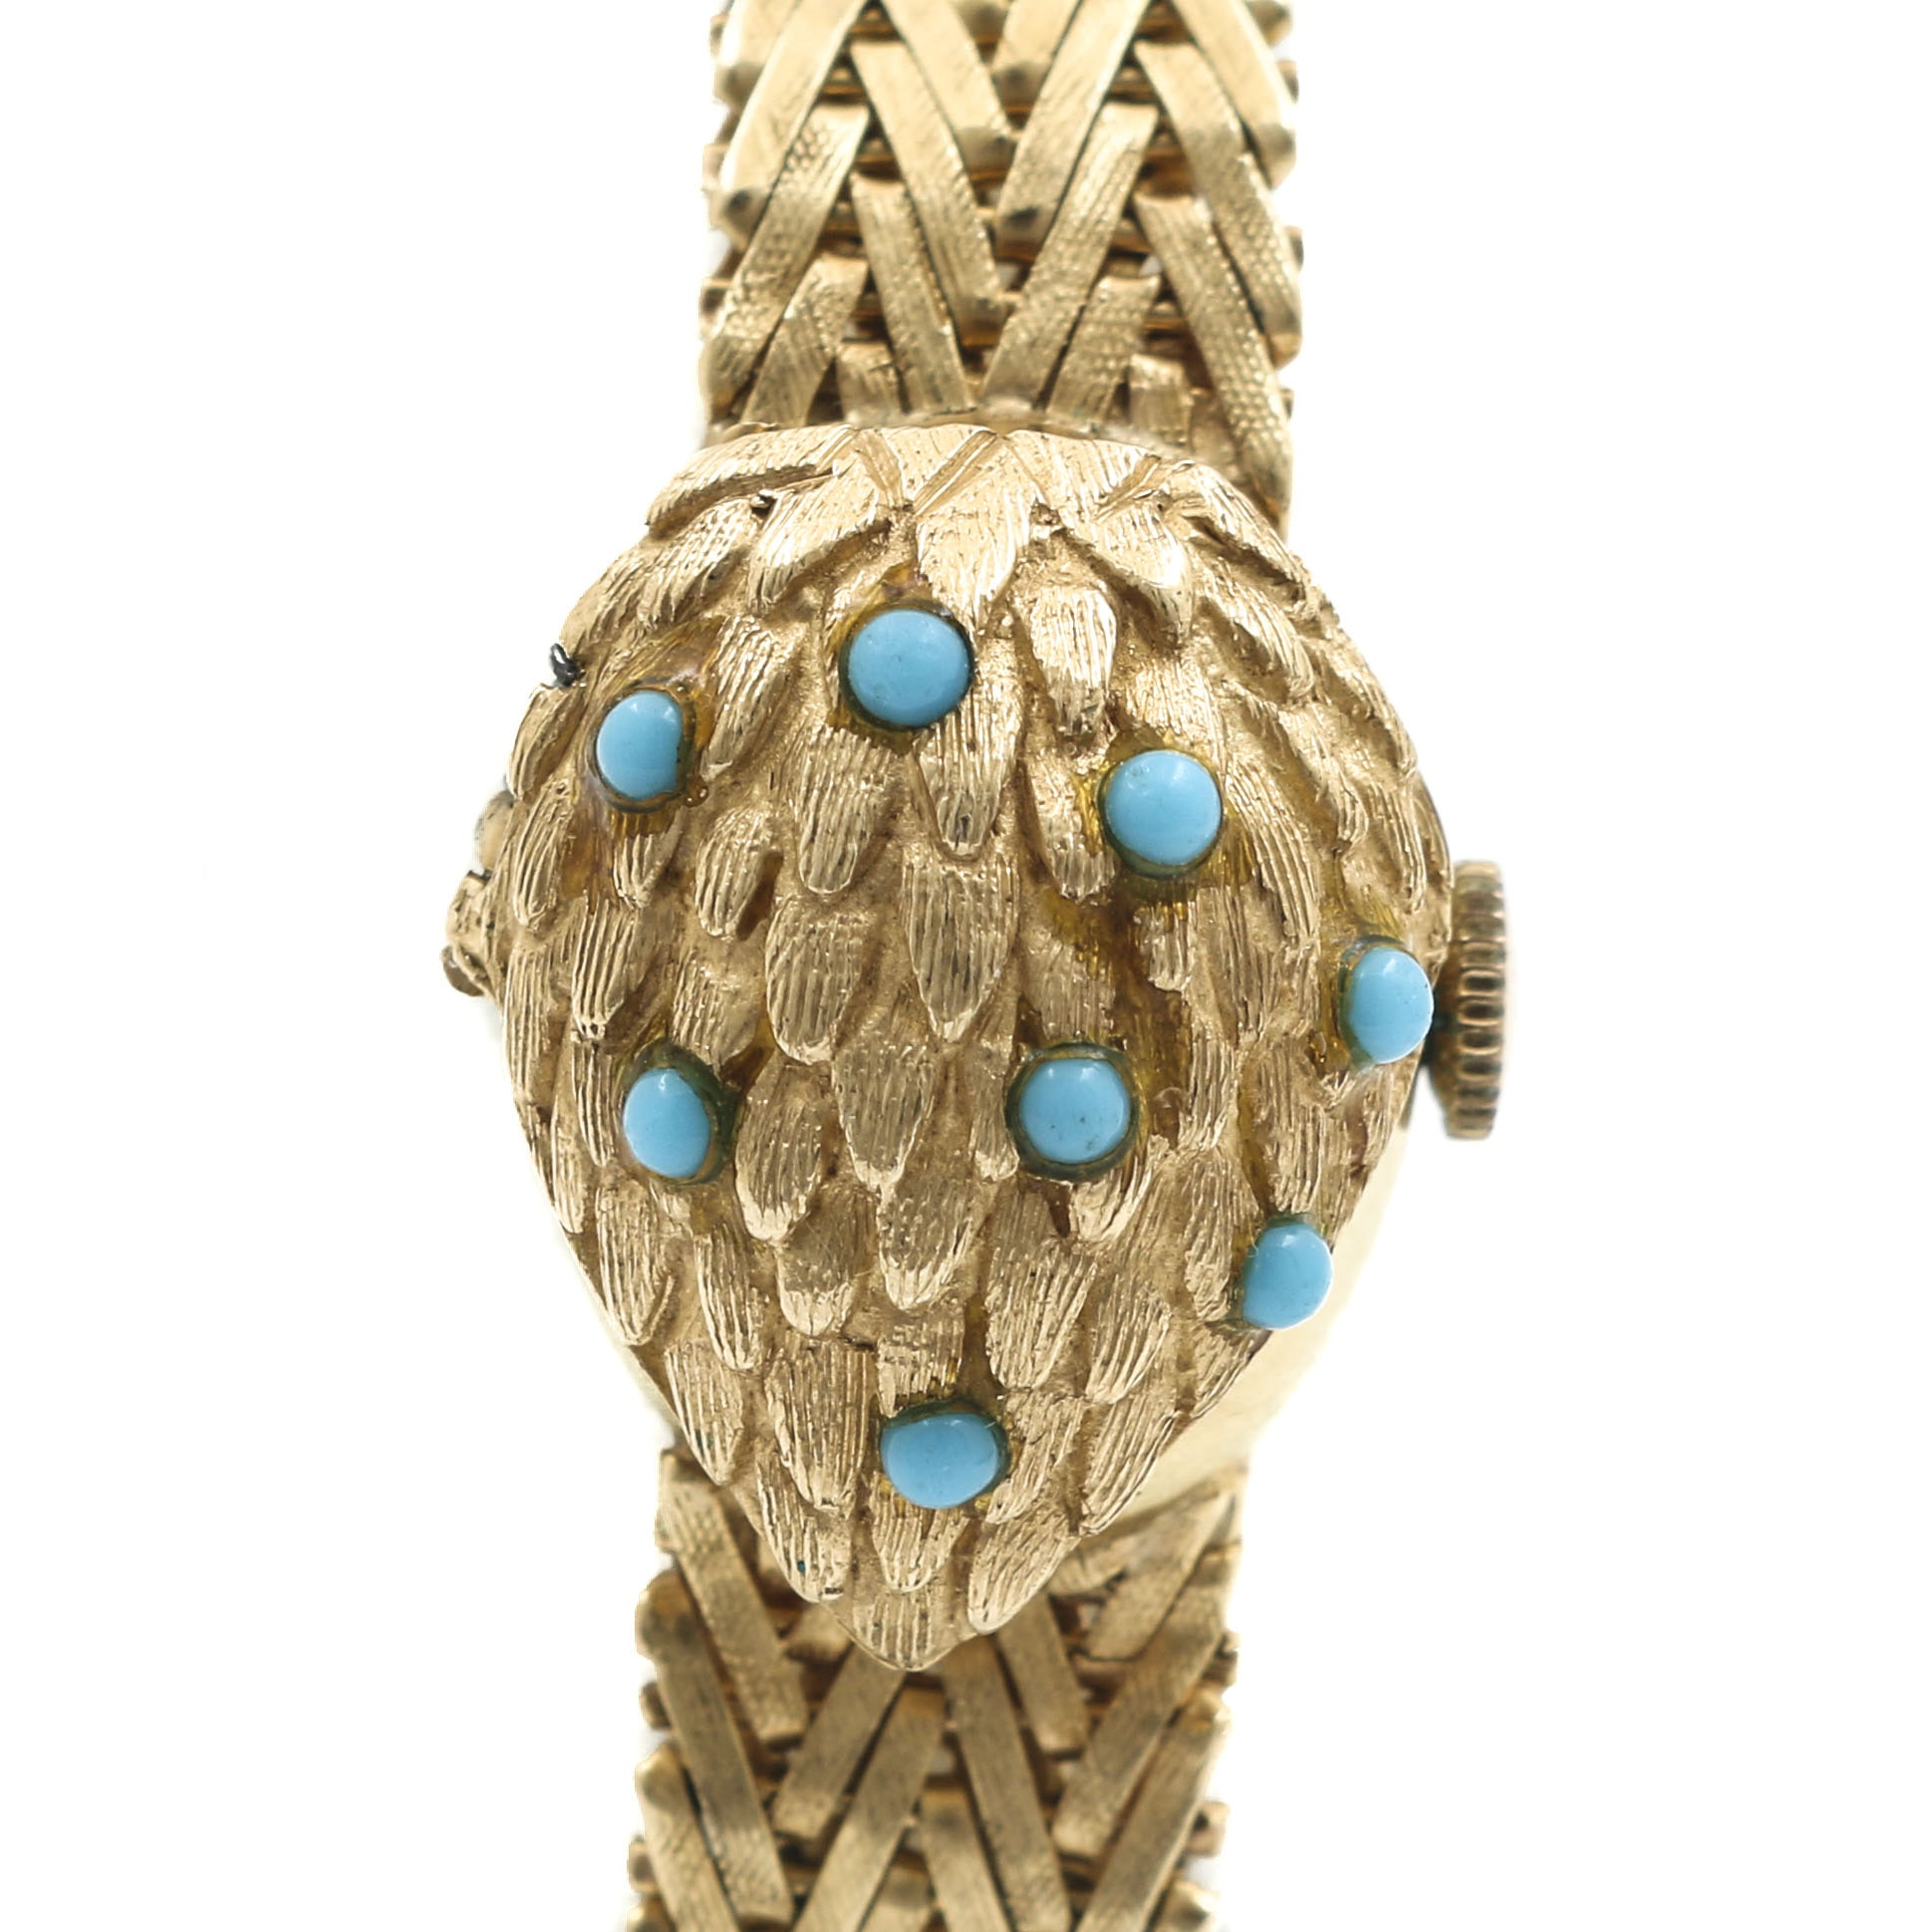 Geneve 14K Yellow Gold Turquoise Wristwatch